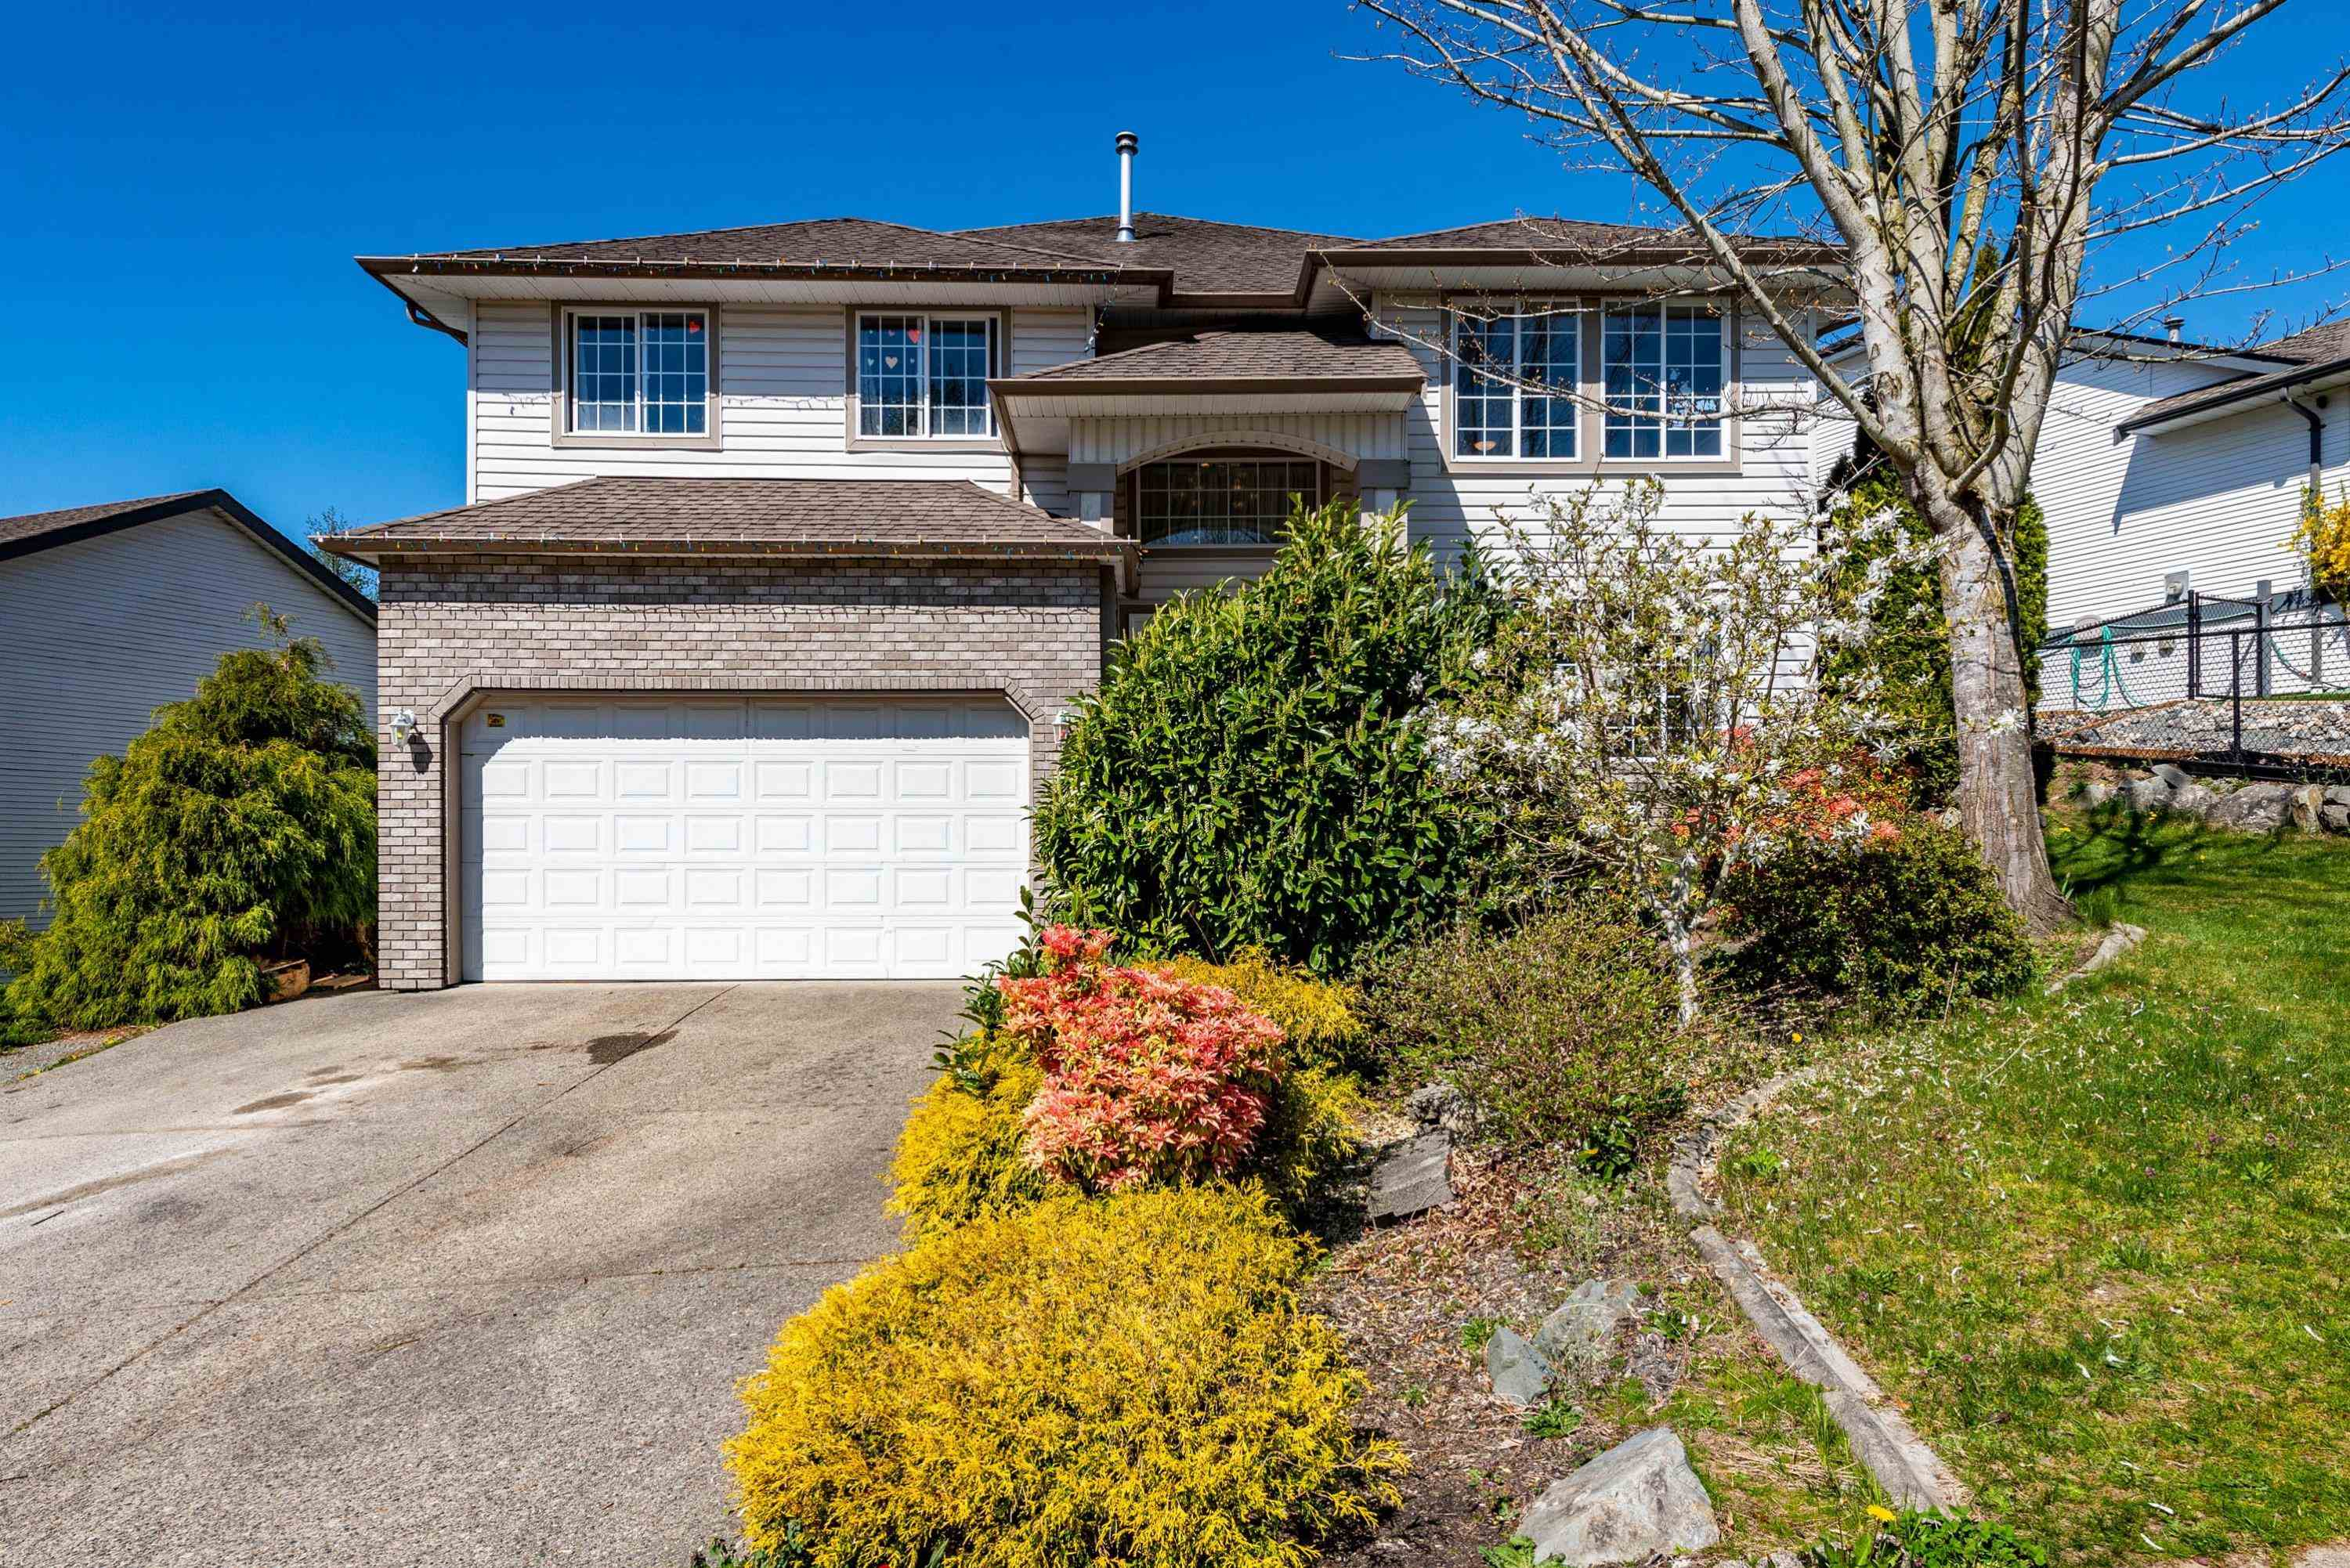 7961 TOPPER DRIVE - Mission BC House/Single Family for sale, 7 Bedrooms (R2626854) - #1